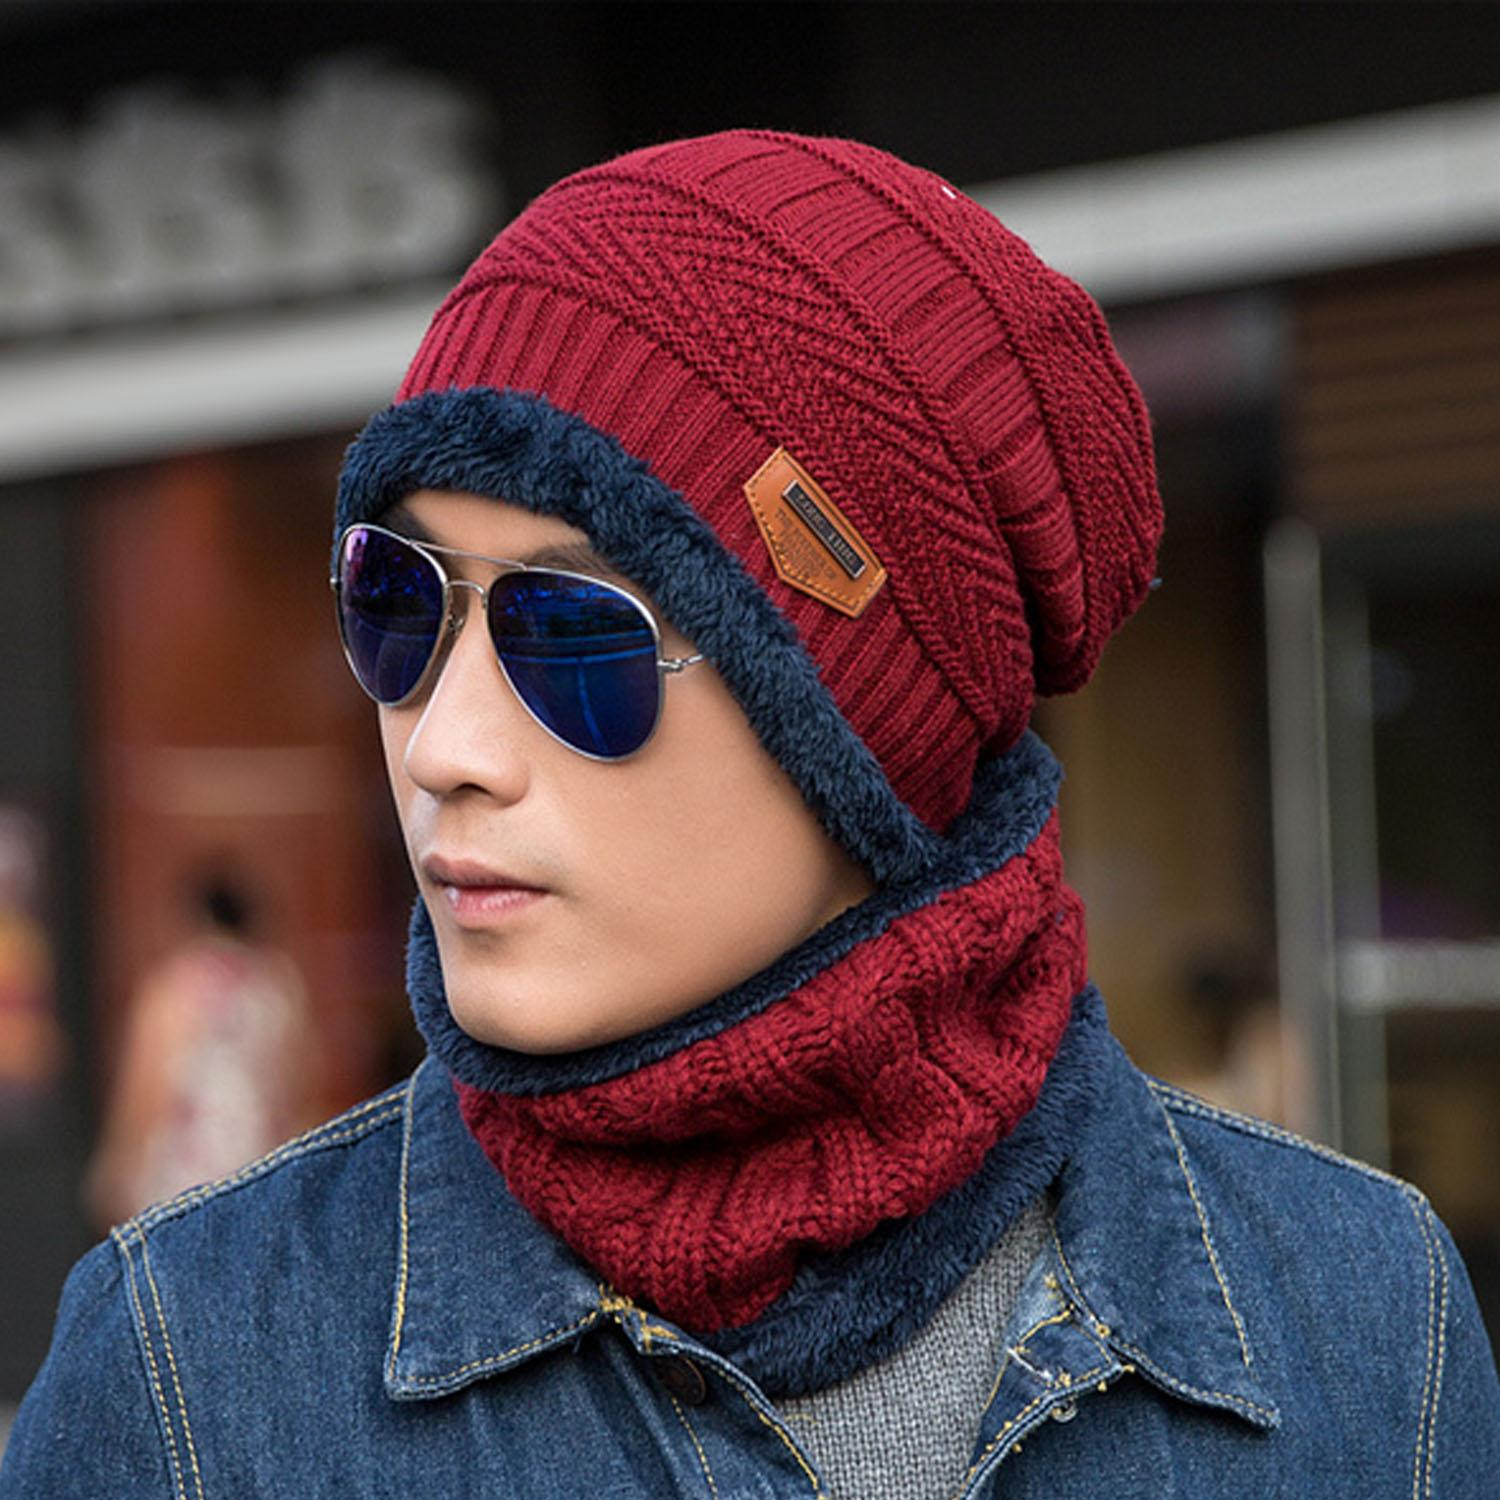 8a92bf0a951 2 PCS Unisex Winter Knit Hat and Neck Warmer Scarf Set Men Women Thick  Knitted Skull